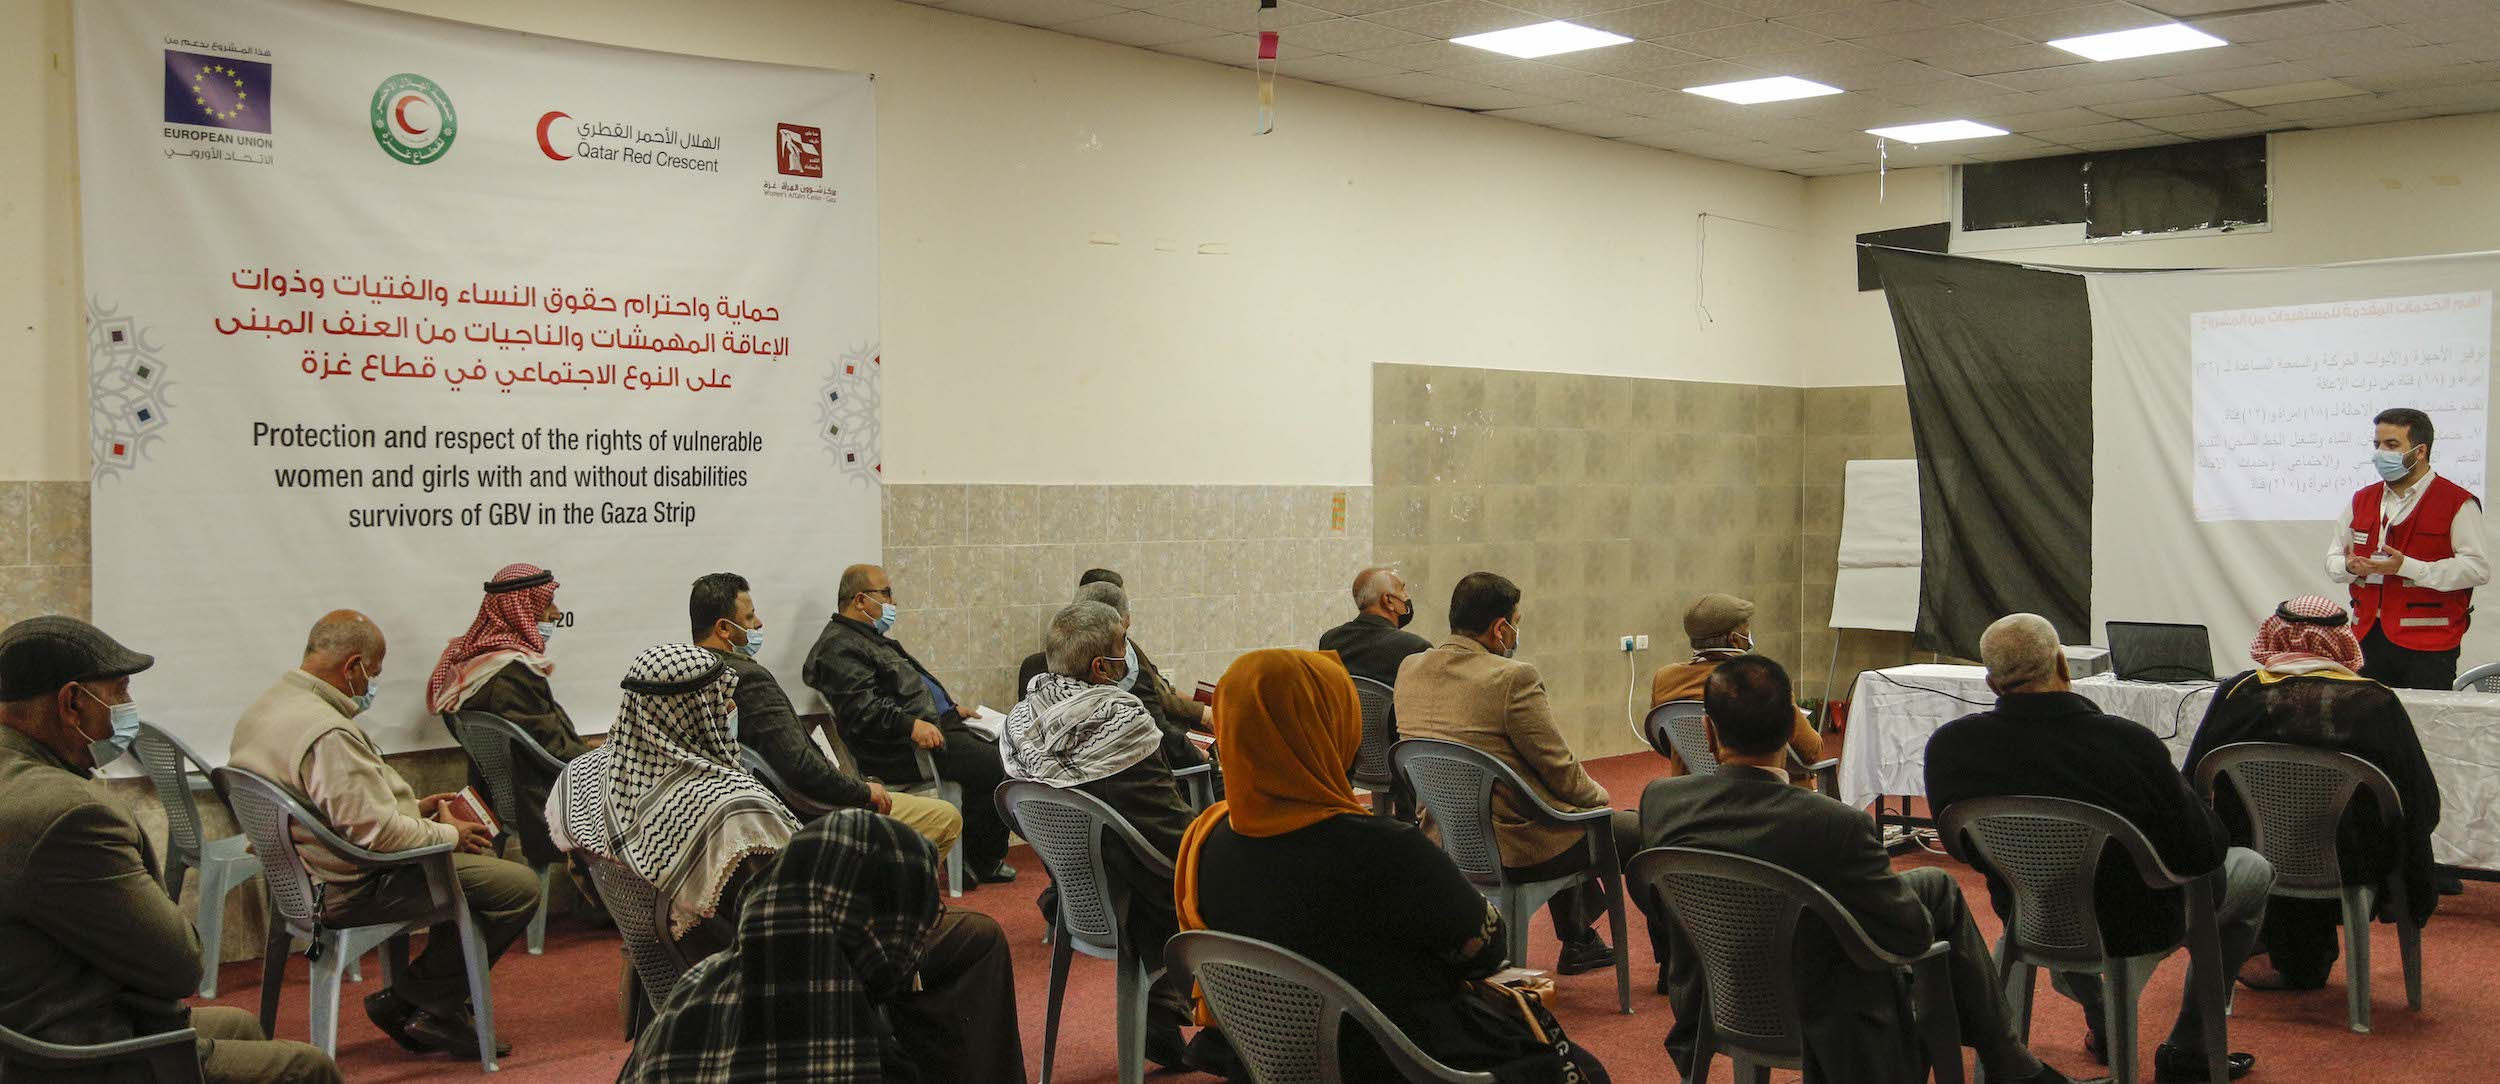 QRCS Supports Rights of Women and People With Disabilities in Gaza Strip